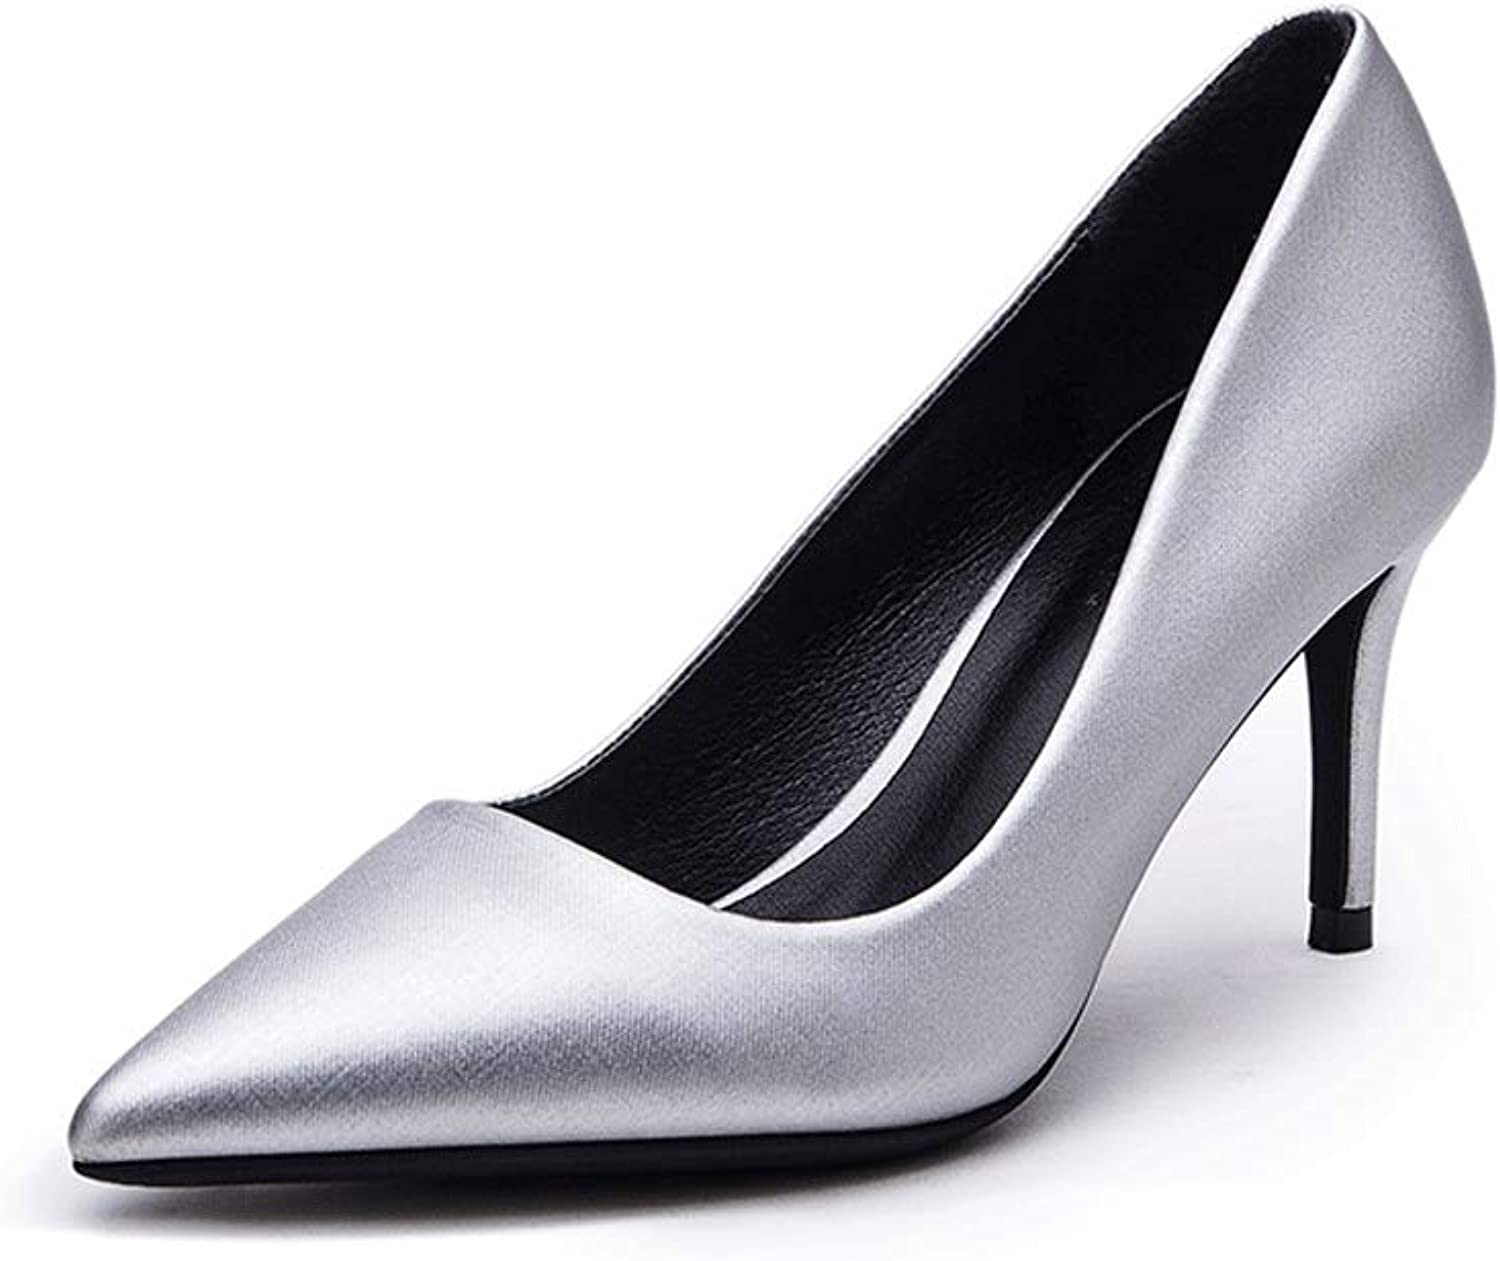 Single shoes 2019 Autumn and Winter New bluee High-Heeled Women's Low-Heeled Pointed with Satin Dress Women's shoes Pumps Stiletto